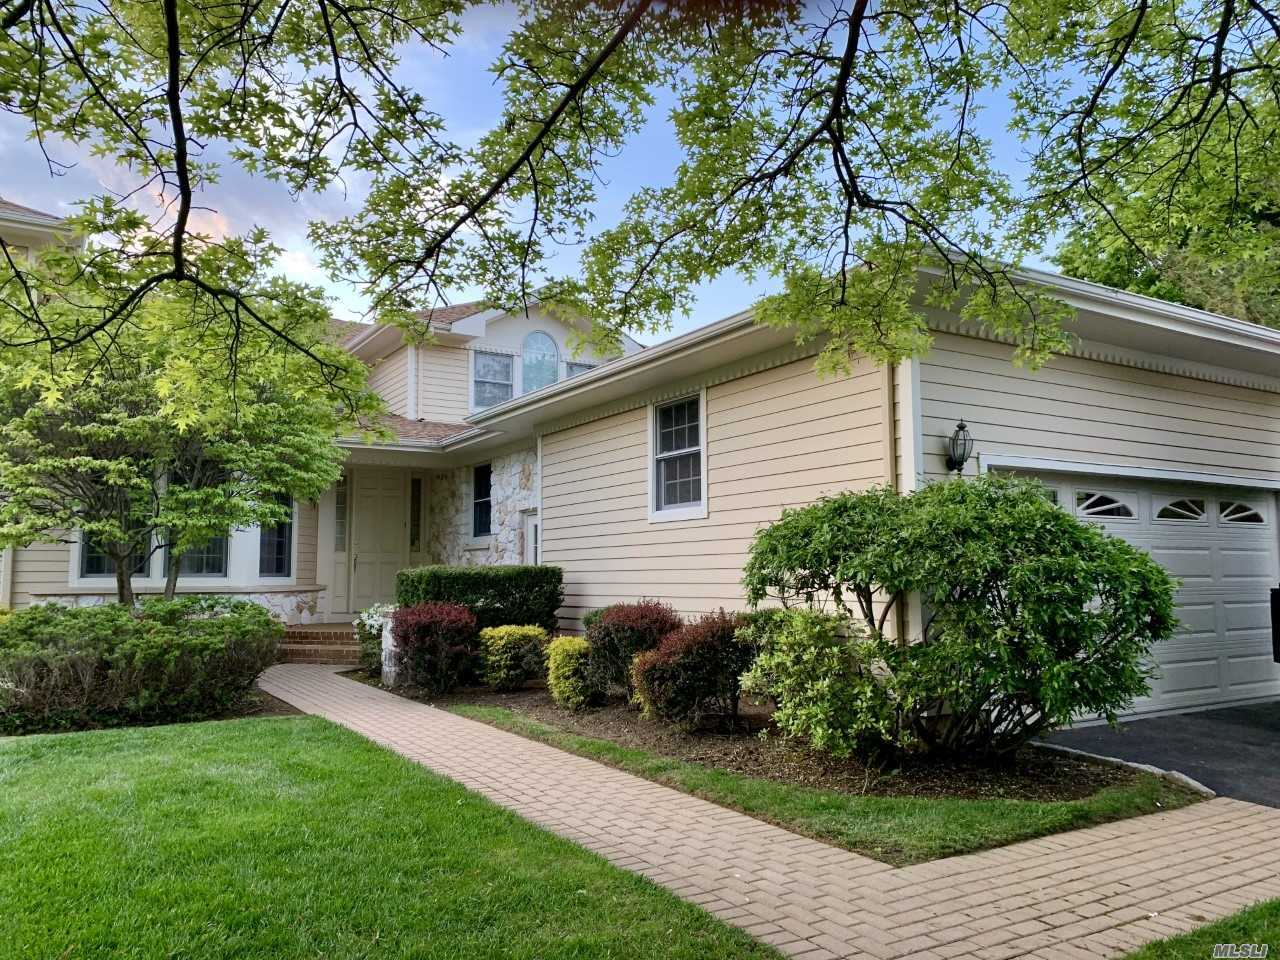 ** BY APPOINTMENT ONLY ** The Vanderbilt THe Most Desirable Home In The Links With A MASTER BEDROOM ON THE MAIN FLOOR in an Inside Location Near Clubhouse with 2 Ensuite Bedrooms and Loft on 2nd Floor